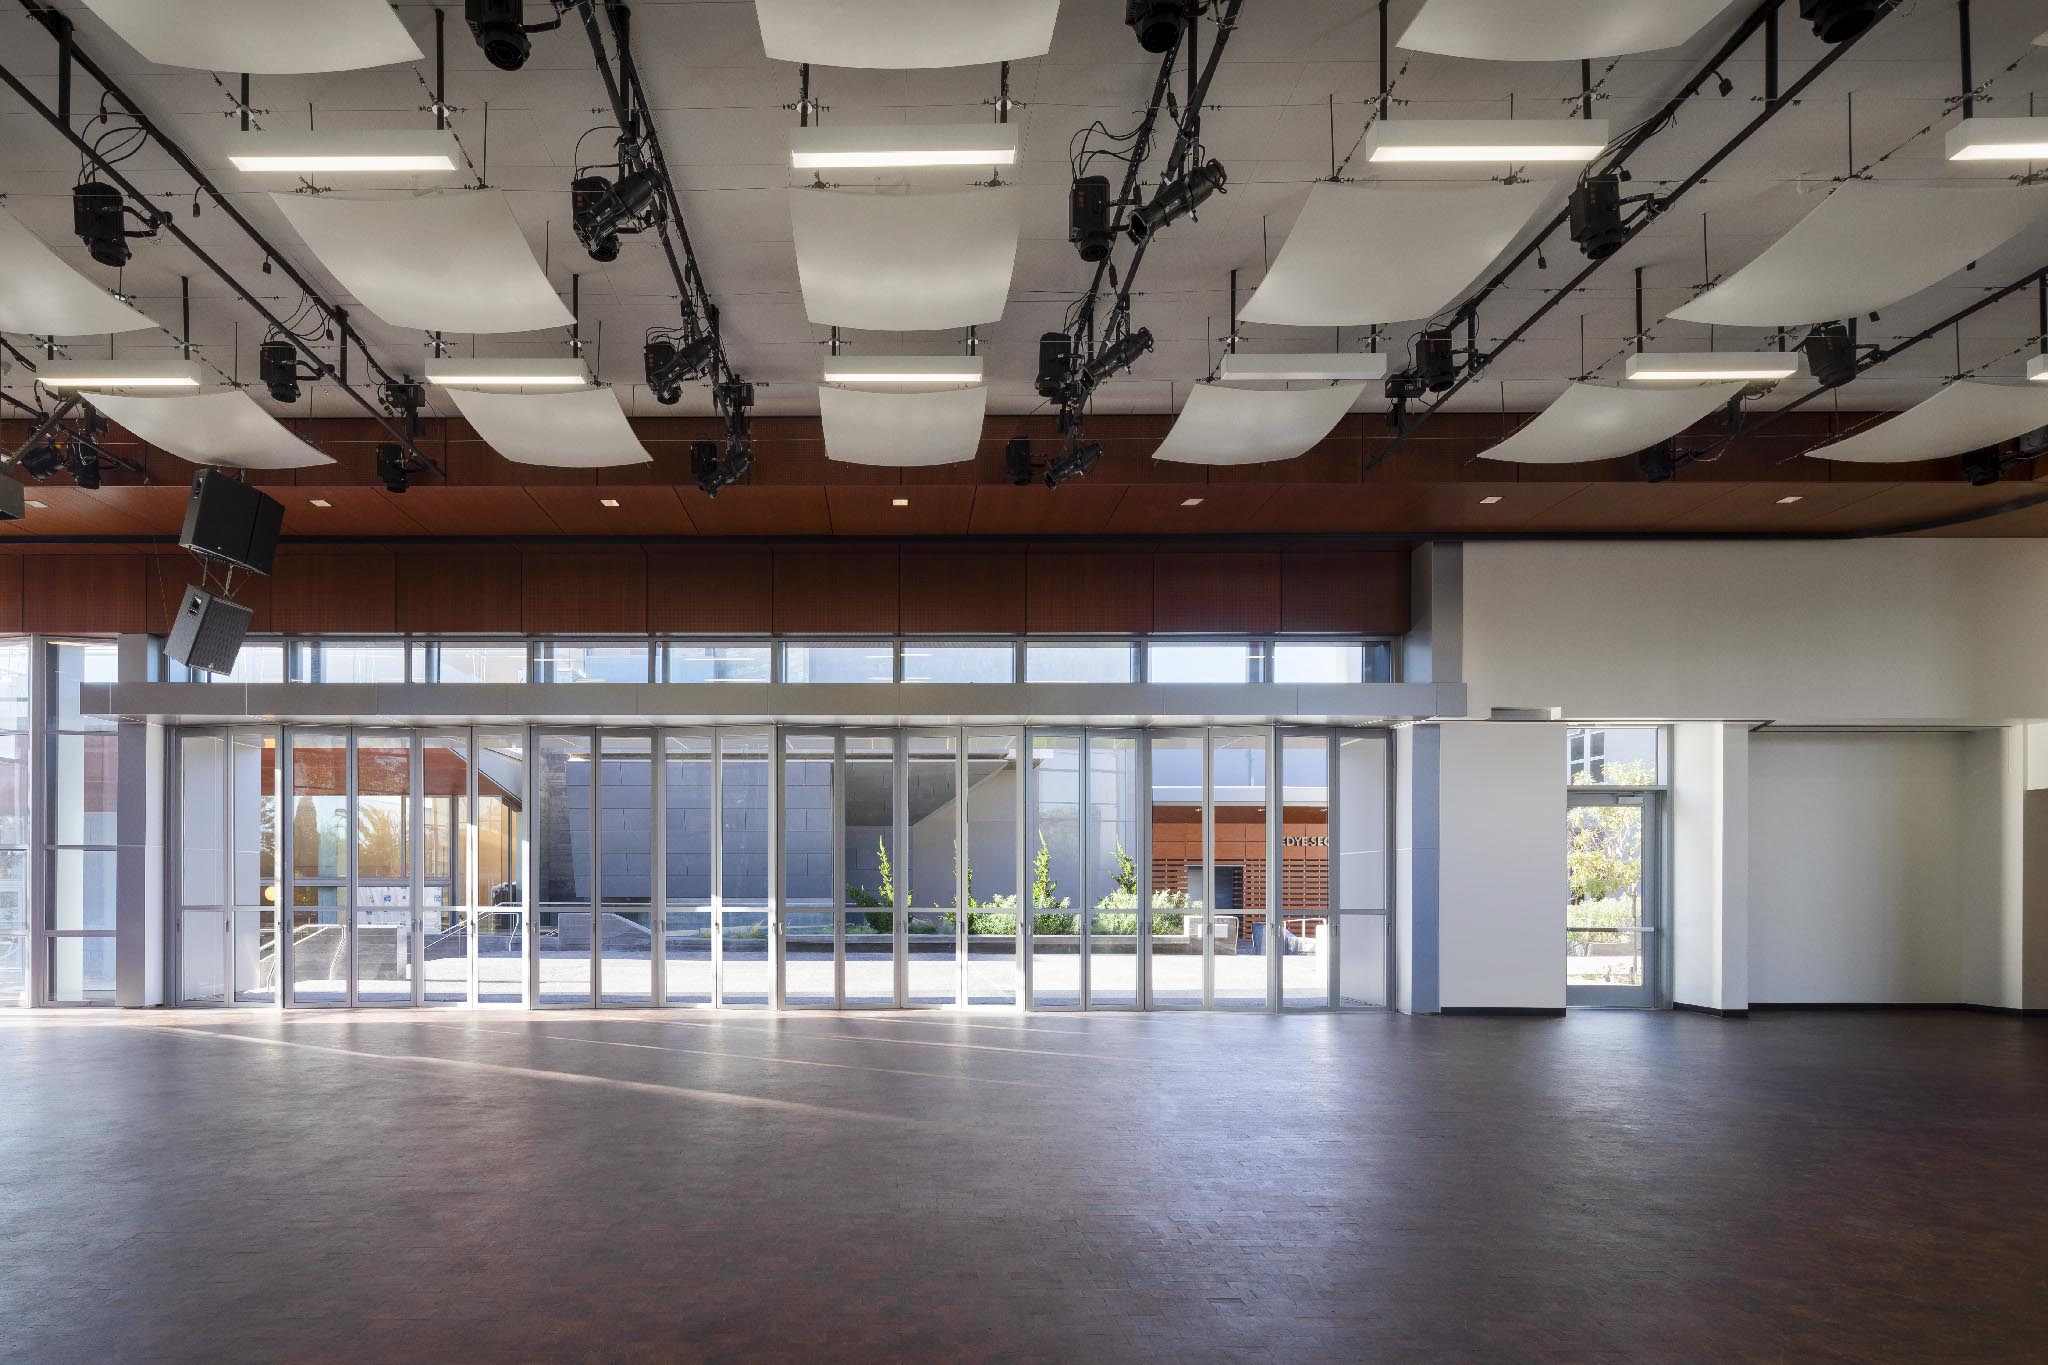 Santa Monica College Gallery NanaWall Operable Glass Wall Systems